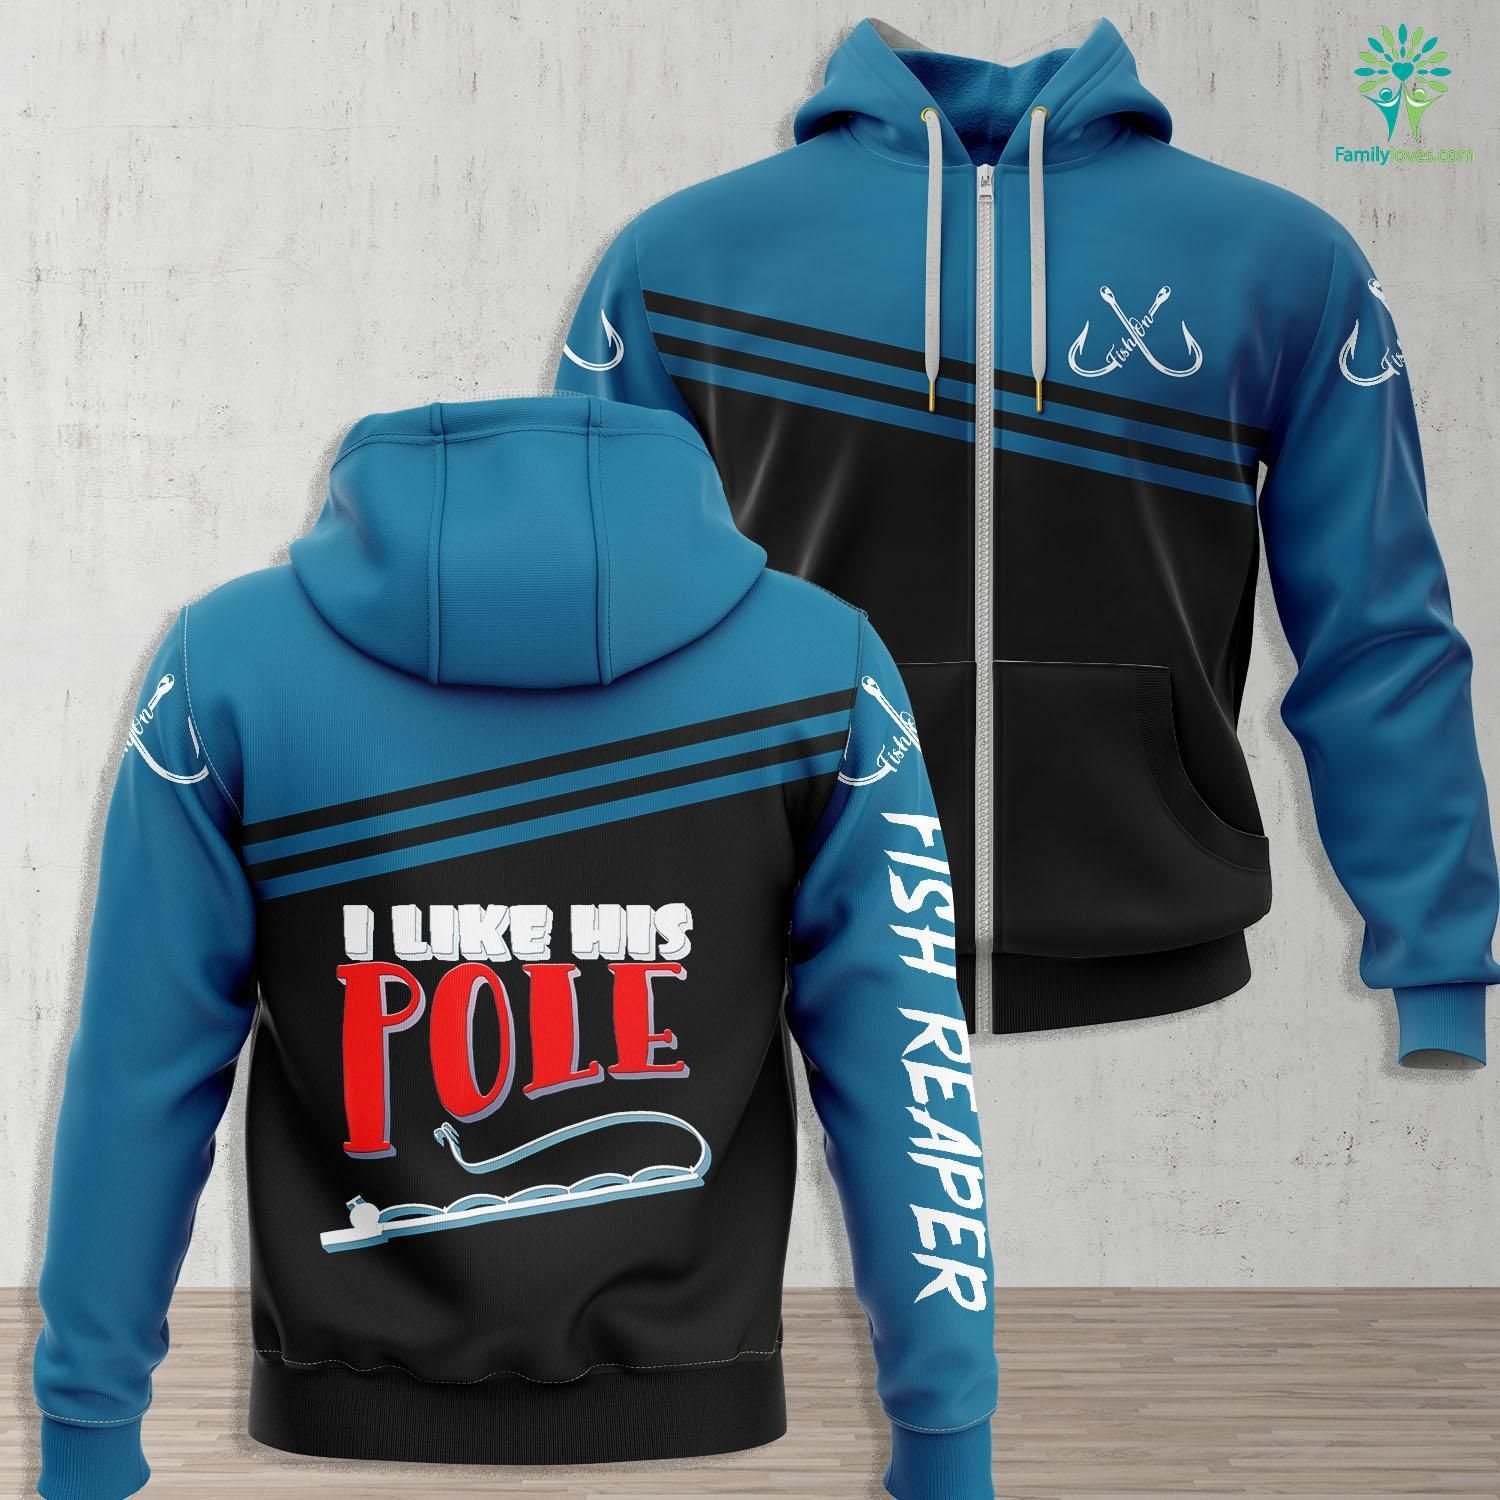 Galveston Fishing Guides Womens I Like His Pole Funny Fishing Couples Fishing Zip up Hoo All Over Print Familyloves